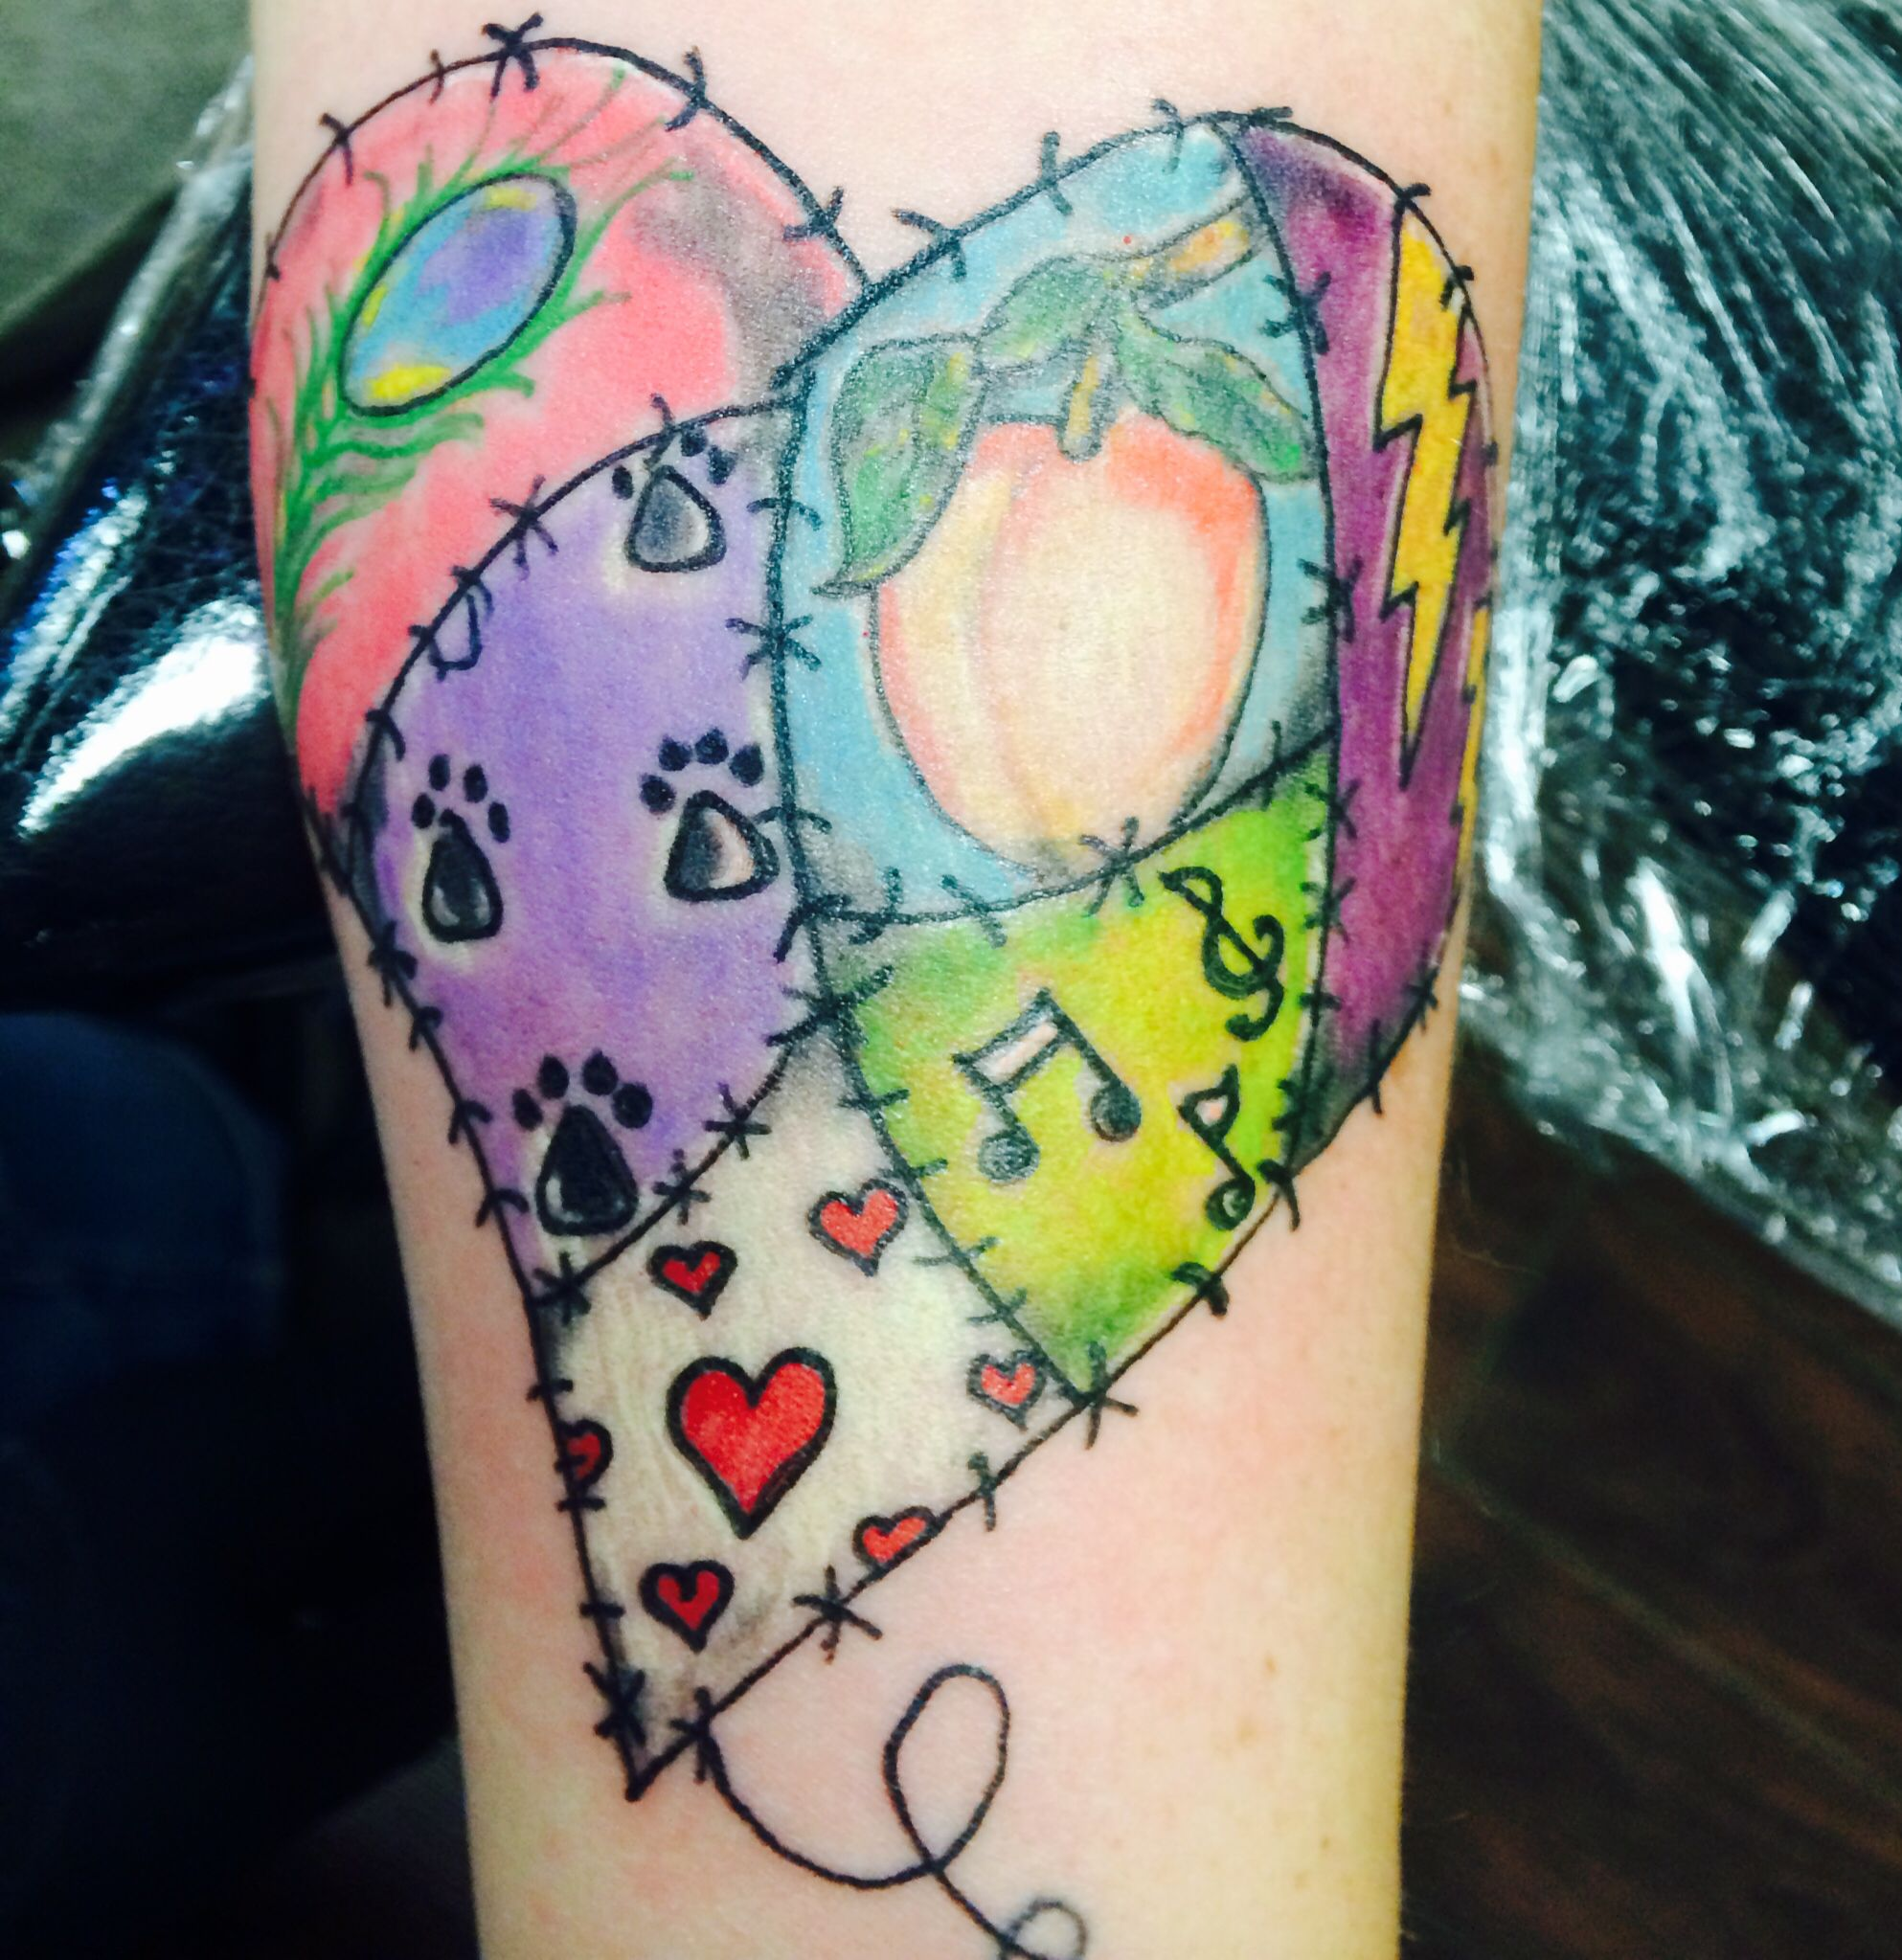 designs for a patchwork quilt tattoo - Google Search | tattoo ... : quilt heart tattoo - Adamdwight.com